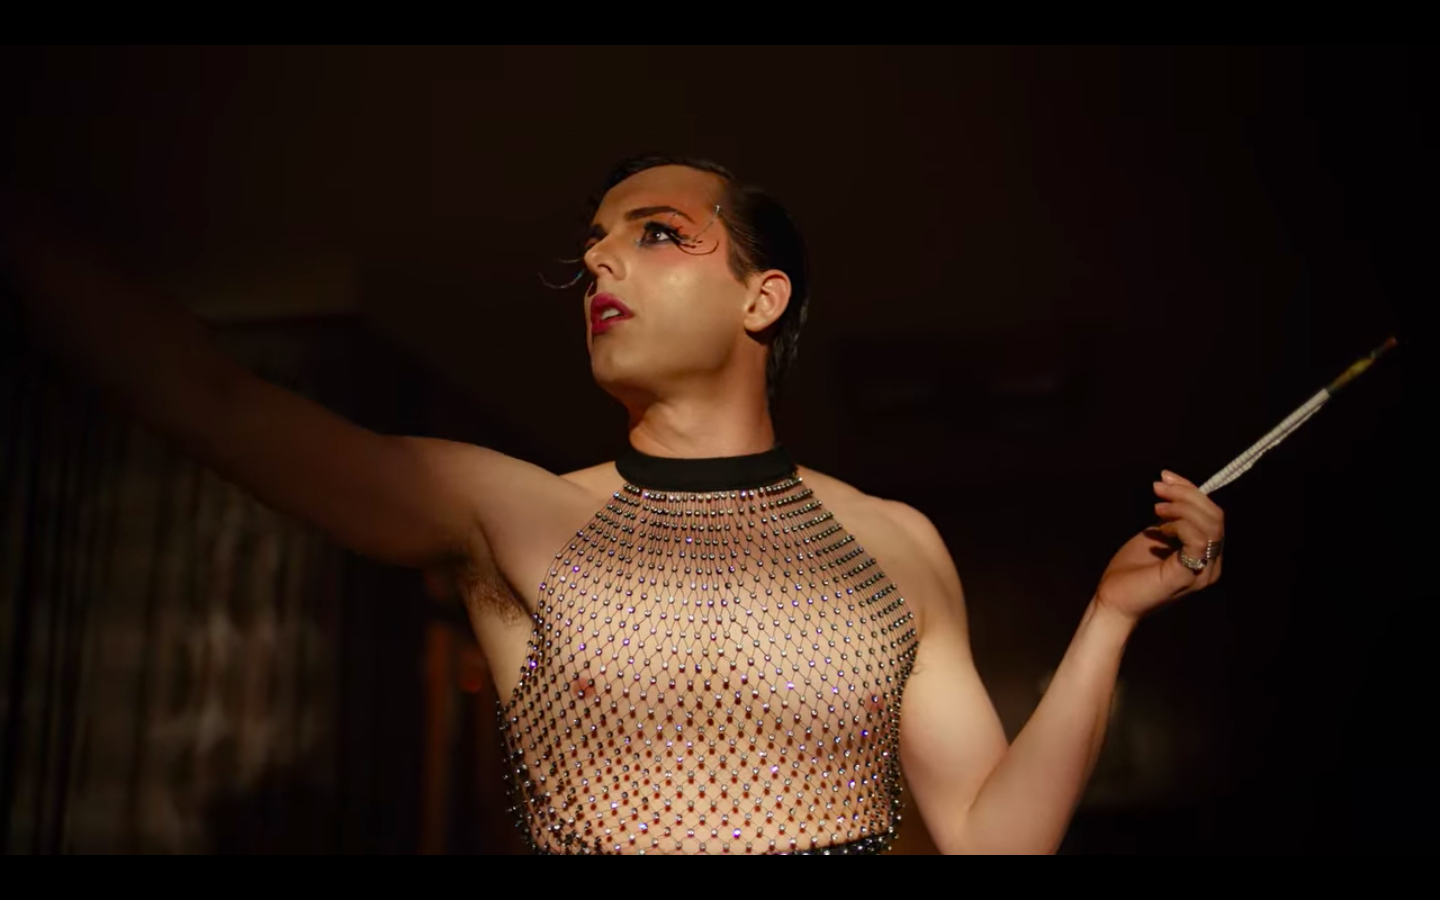 Austin in a costume. He is wearing a chain mail kind of top that is sleeveless and has a velvet choker collar. He has extremely long false eyelashes and is holding a long cigarette holder.